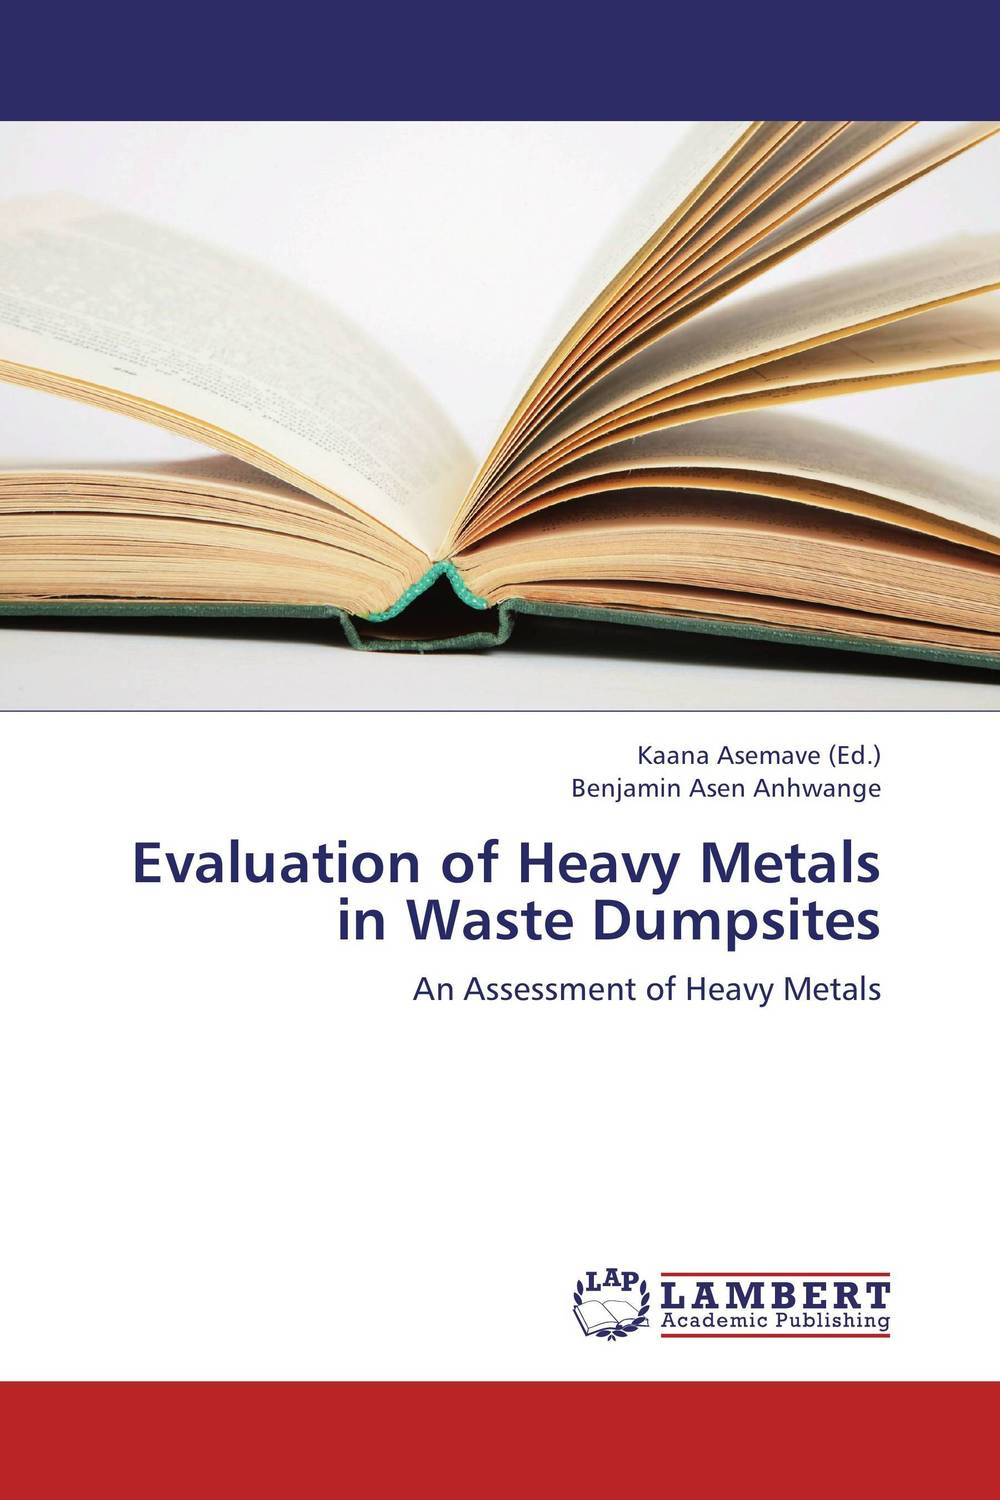 Evaluation of Heavy Metals in Waste Dumpsites marwan a ibrahim effect of heavy metals on haematological and testicular functions